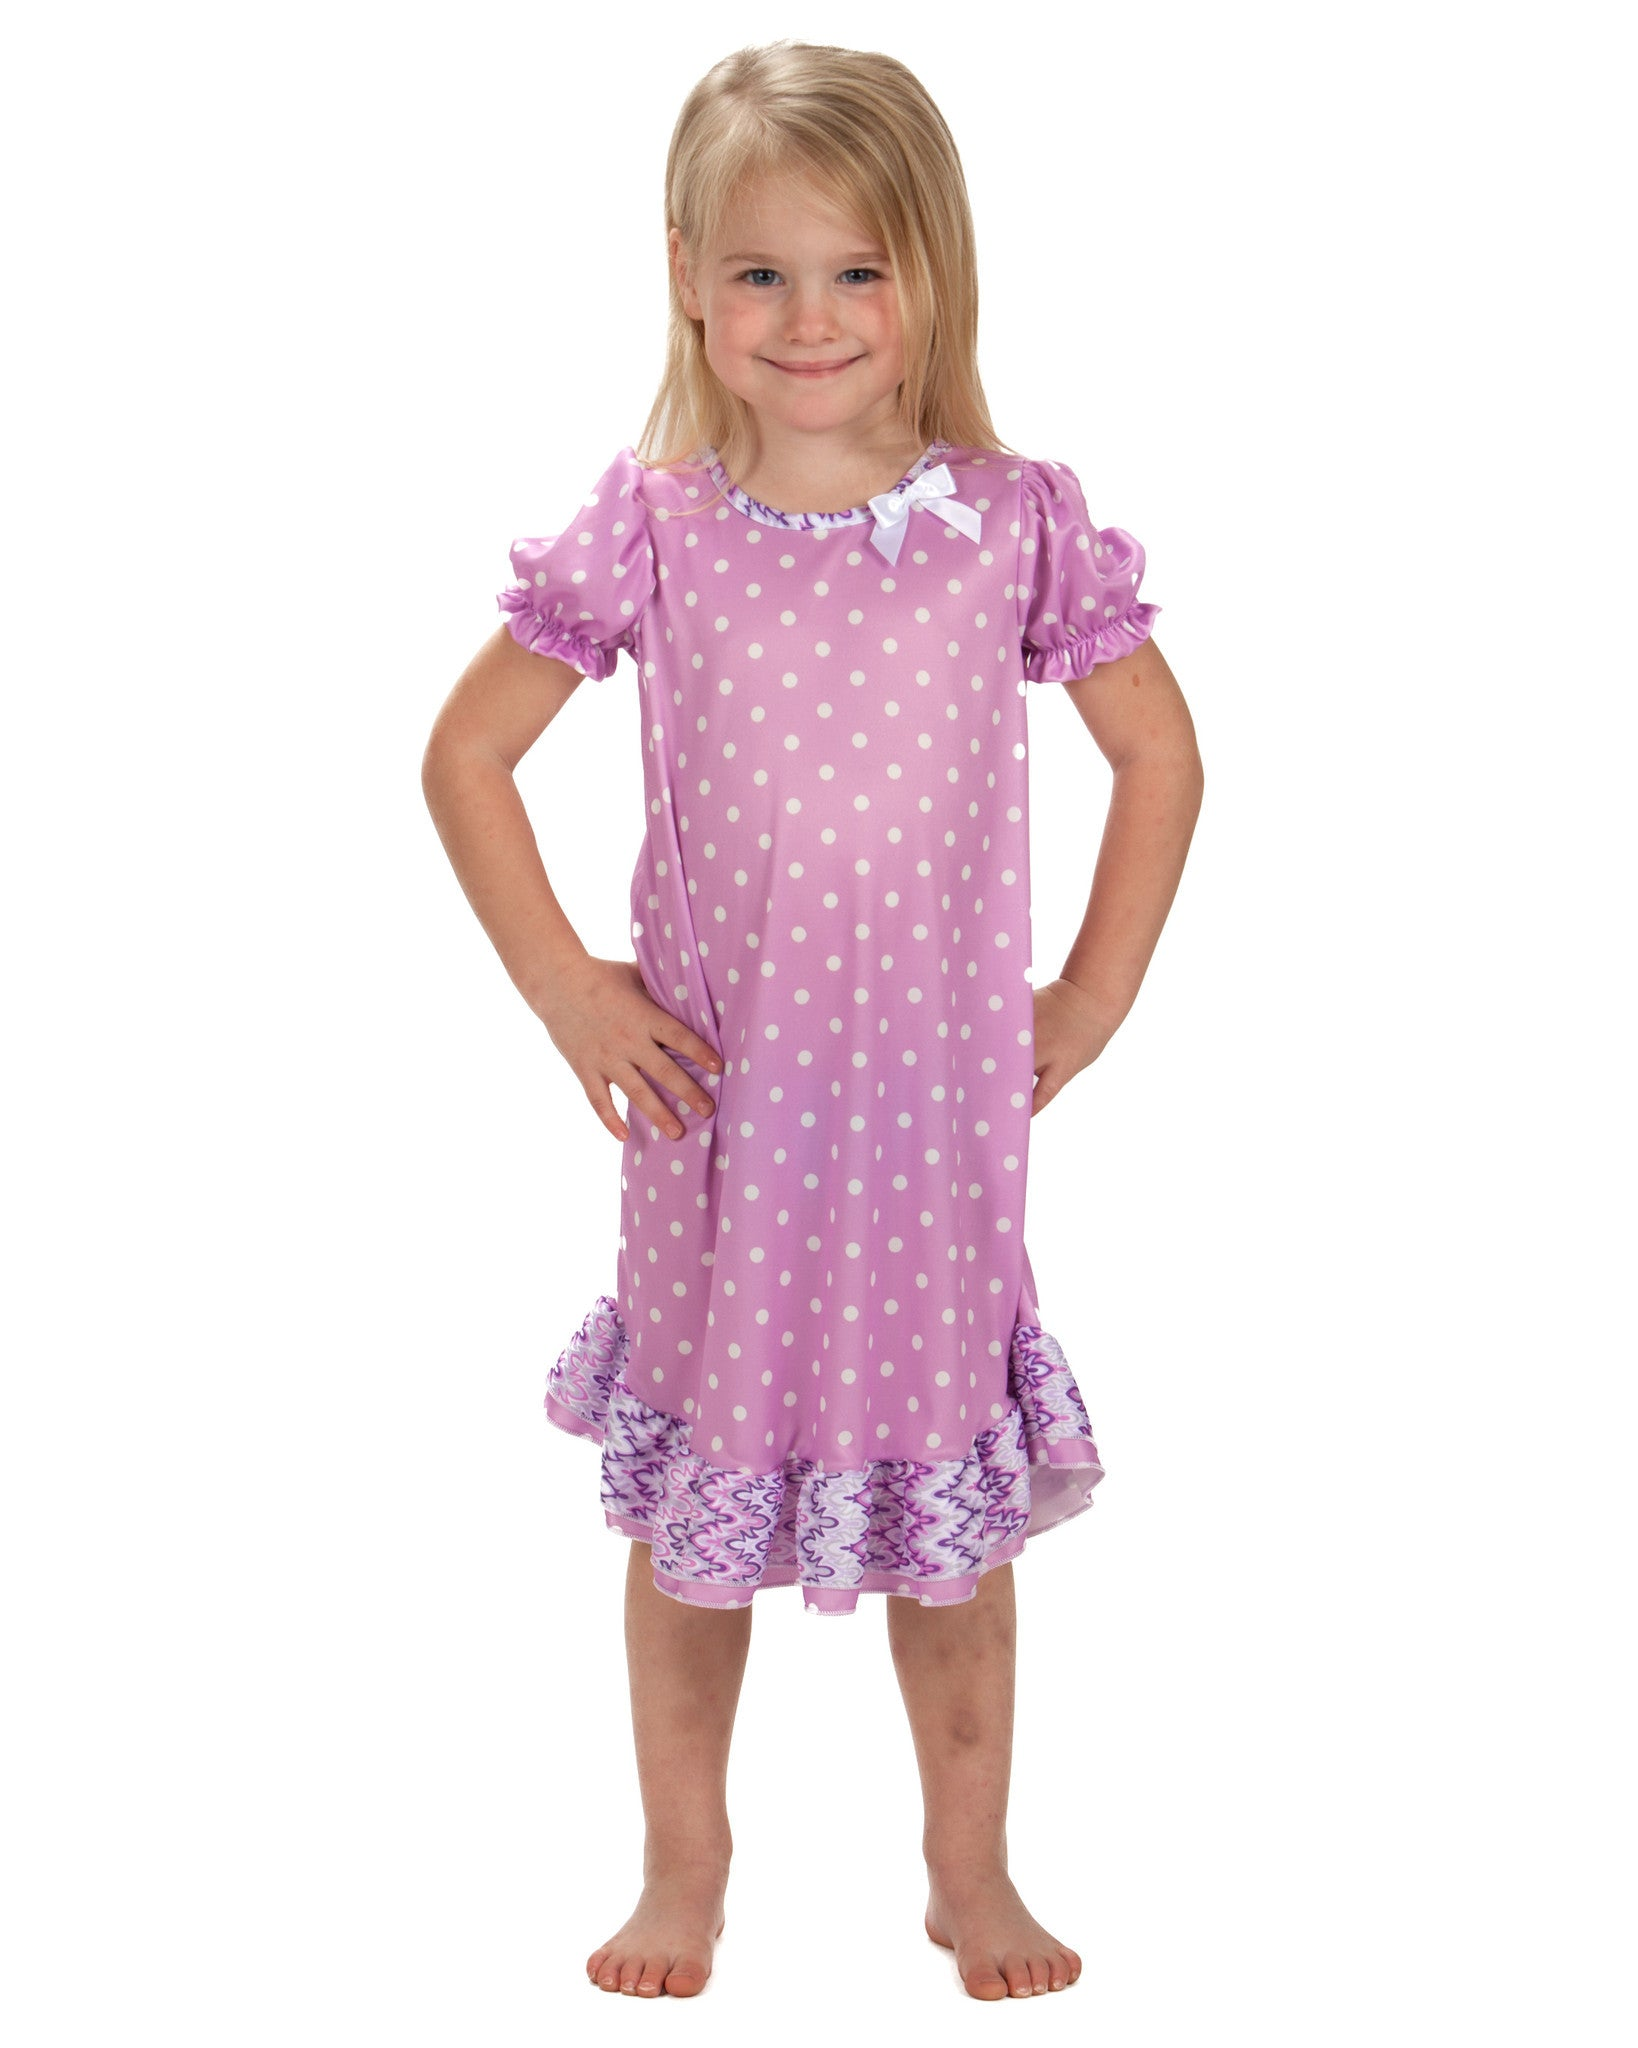 Laura Dare Uptown Girl Puff Sleeve Nightgown (6m - 10)